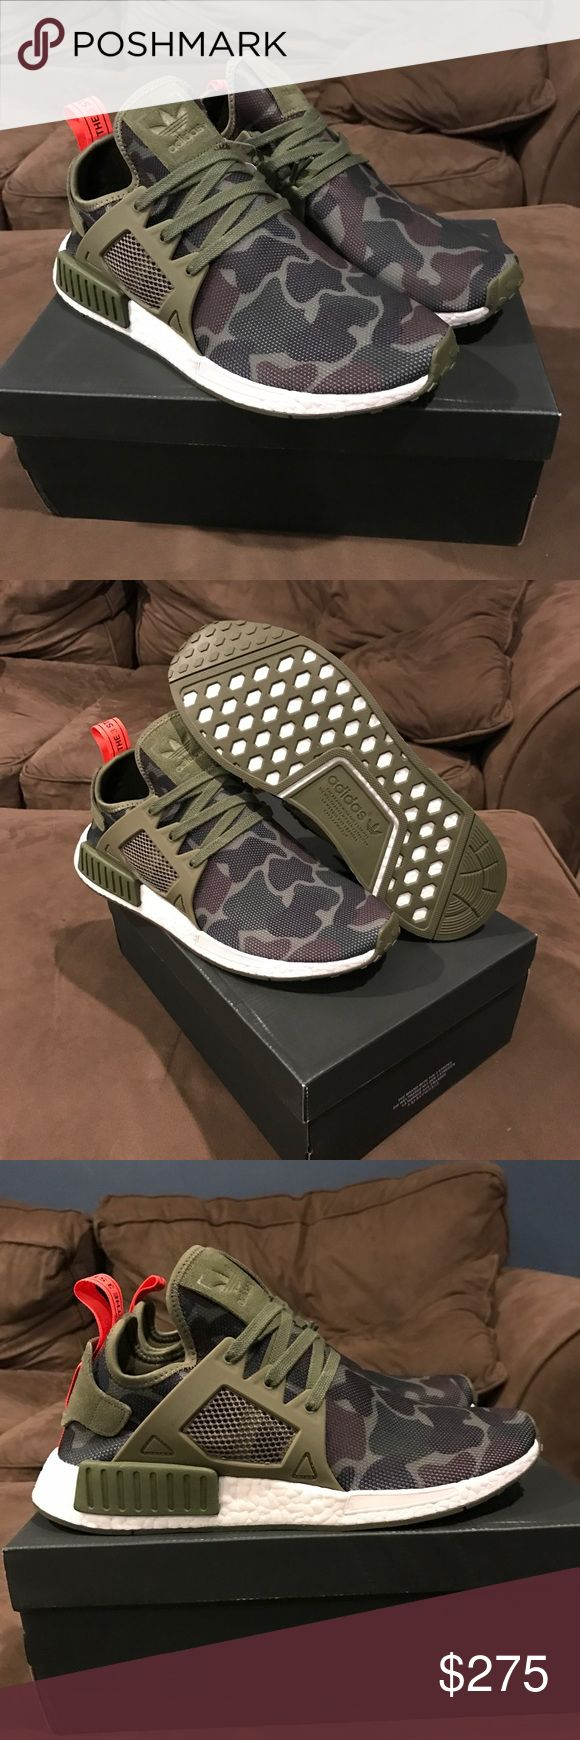 Adidas Camo NMDs *Exclusive* Adidas Camo NMDs *Exclusive* Adidas shoe Sold out everywhere and Deadstock. Size 10 BRAND NEW IN THE BOX. Make an offer before they're gone!!! Adidas Shoes Sneakers